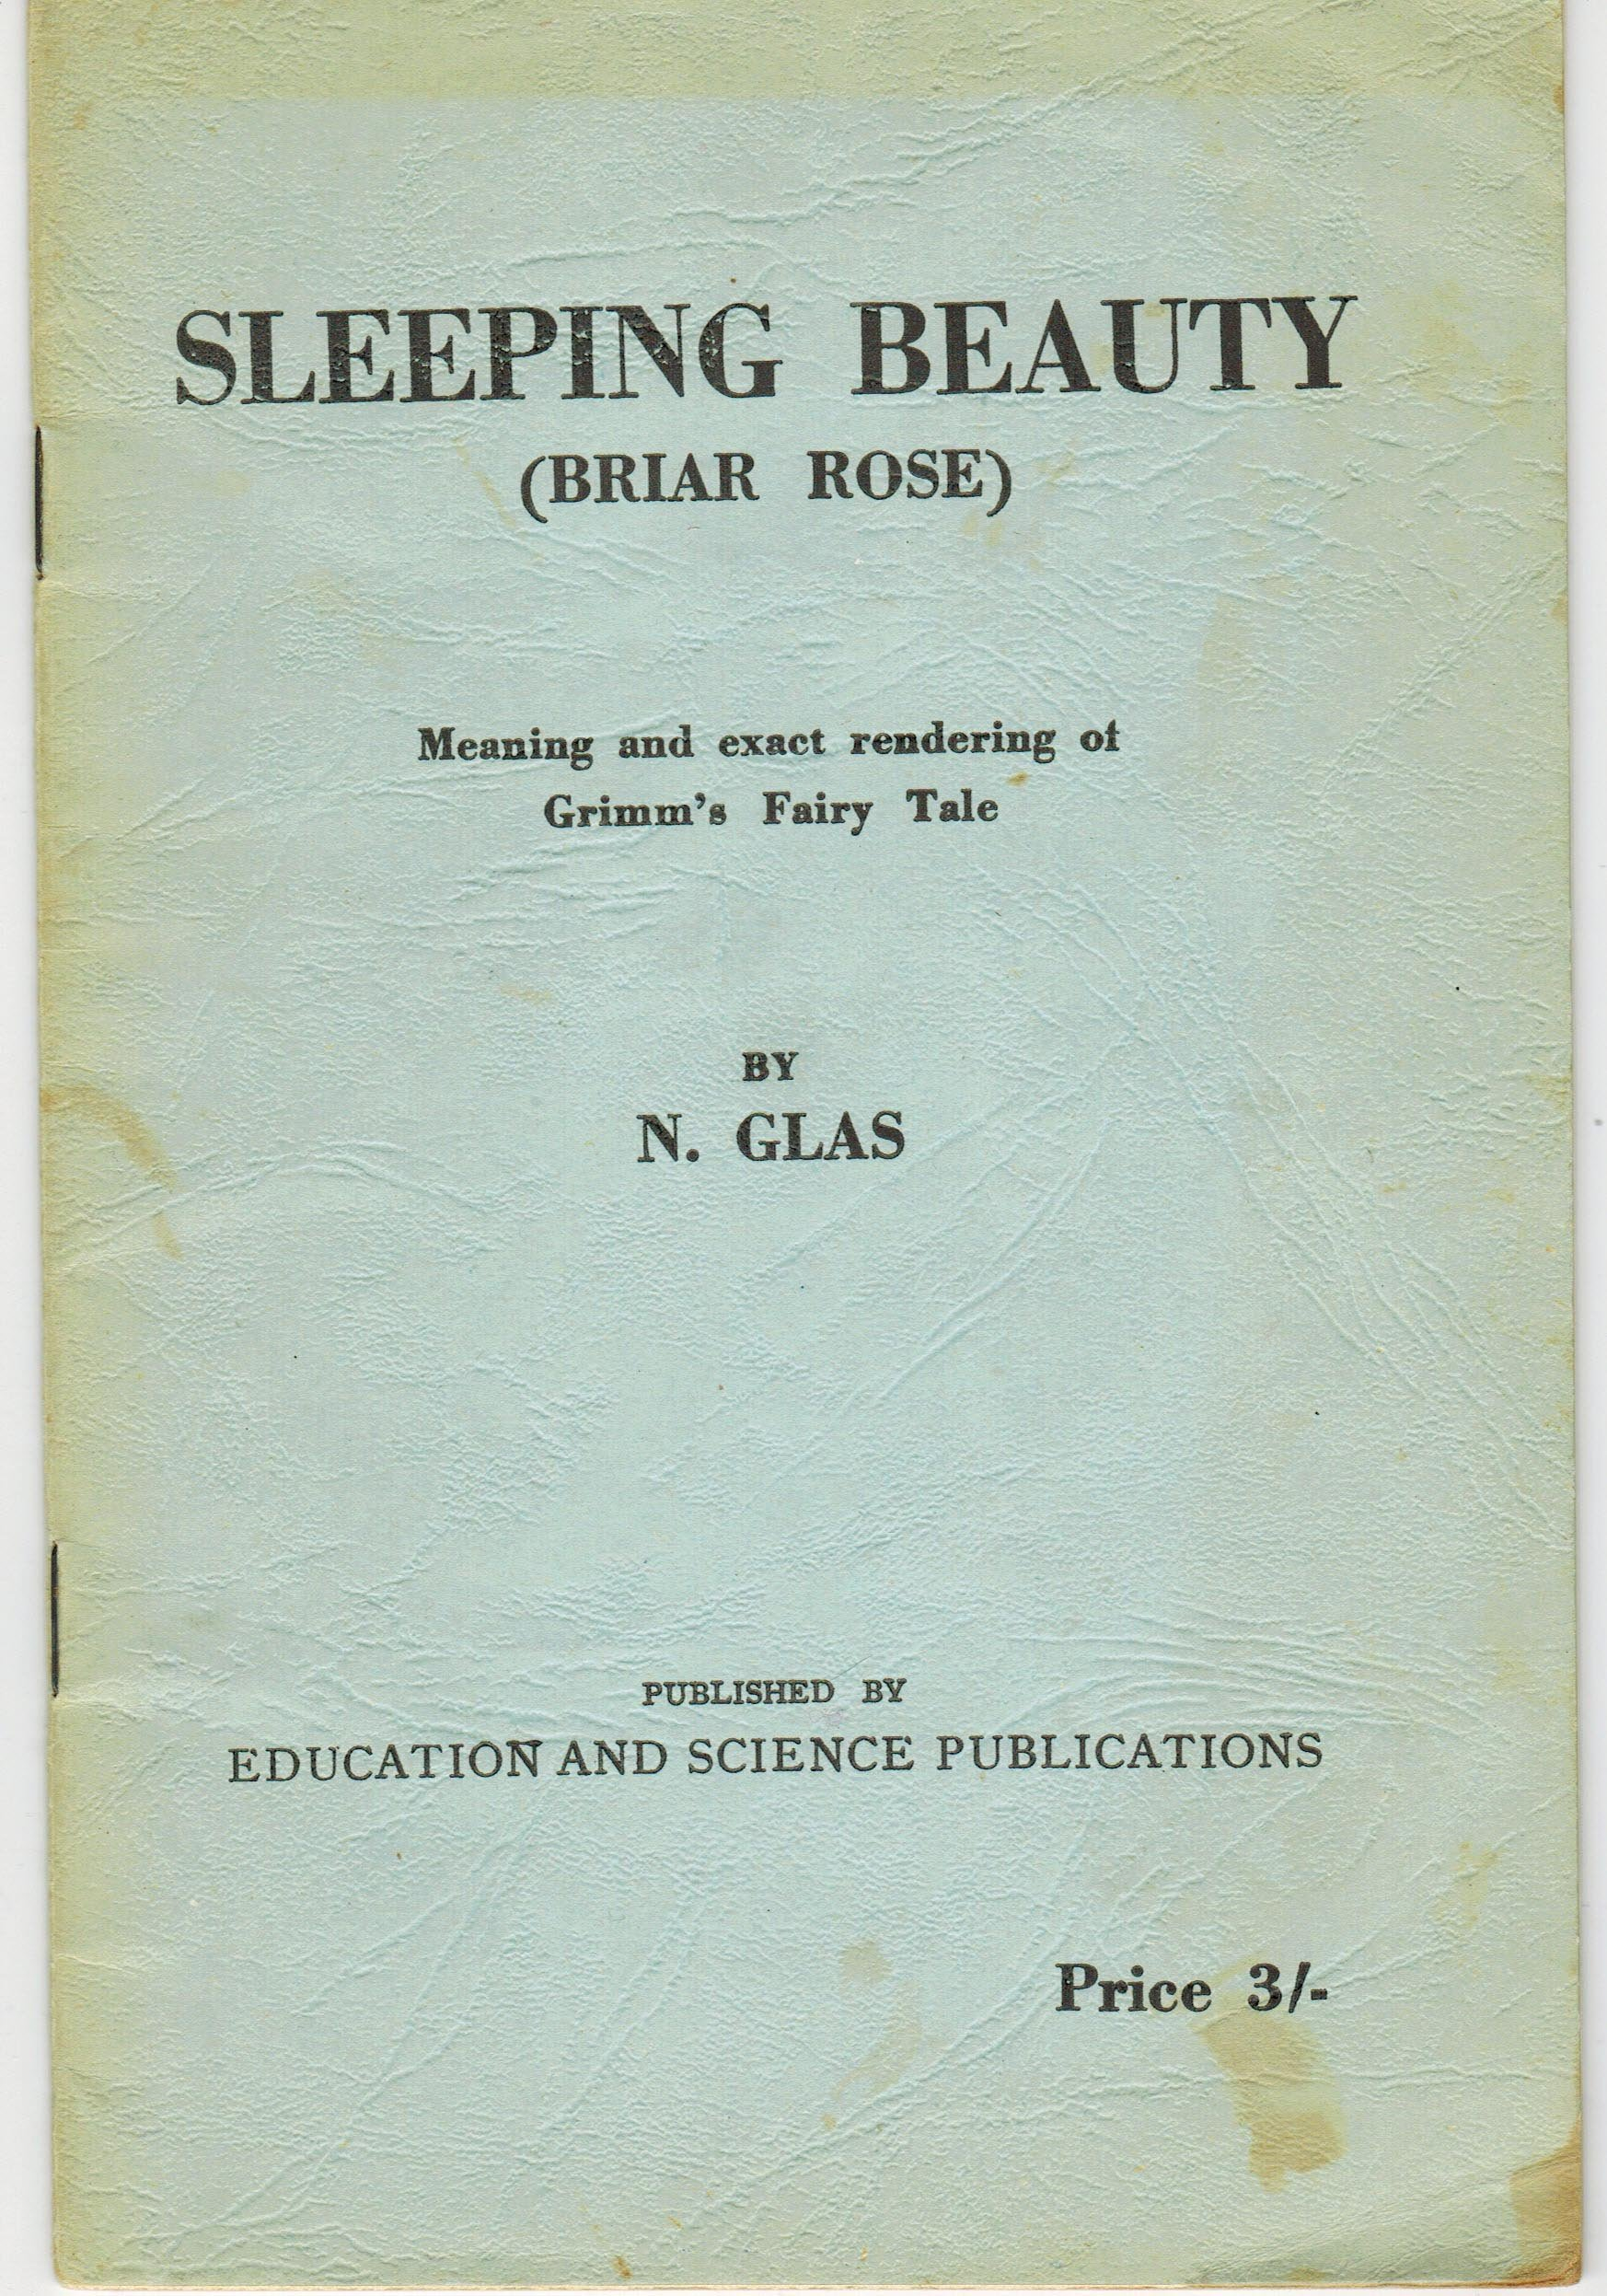 Sleeping Beauty (Briar Rose) Meaning and Exact Rendering of